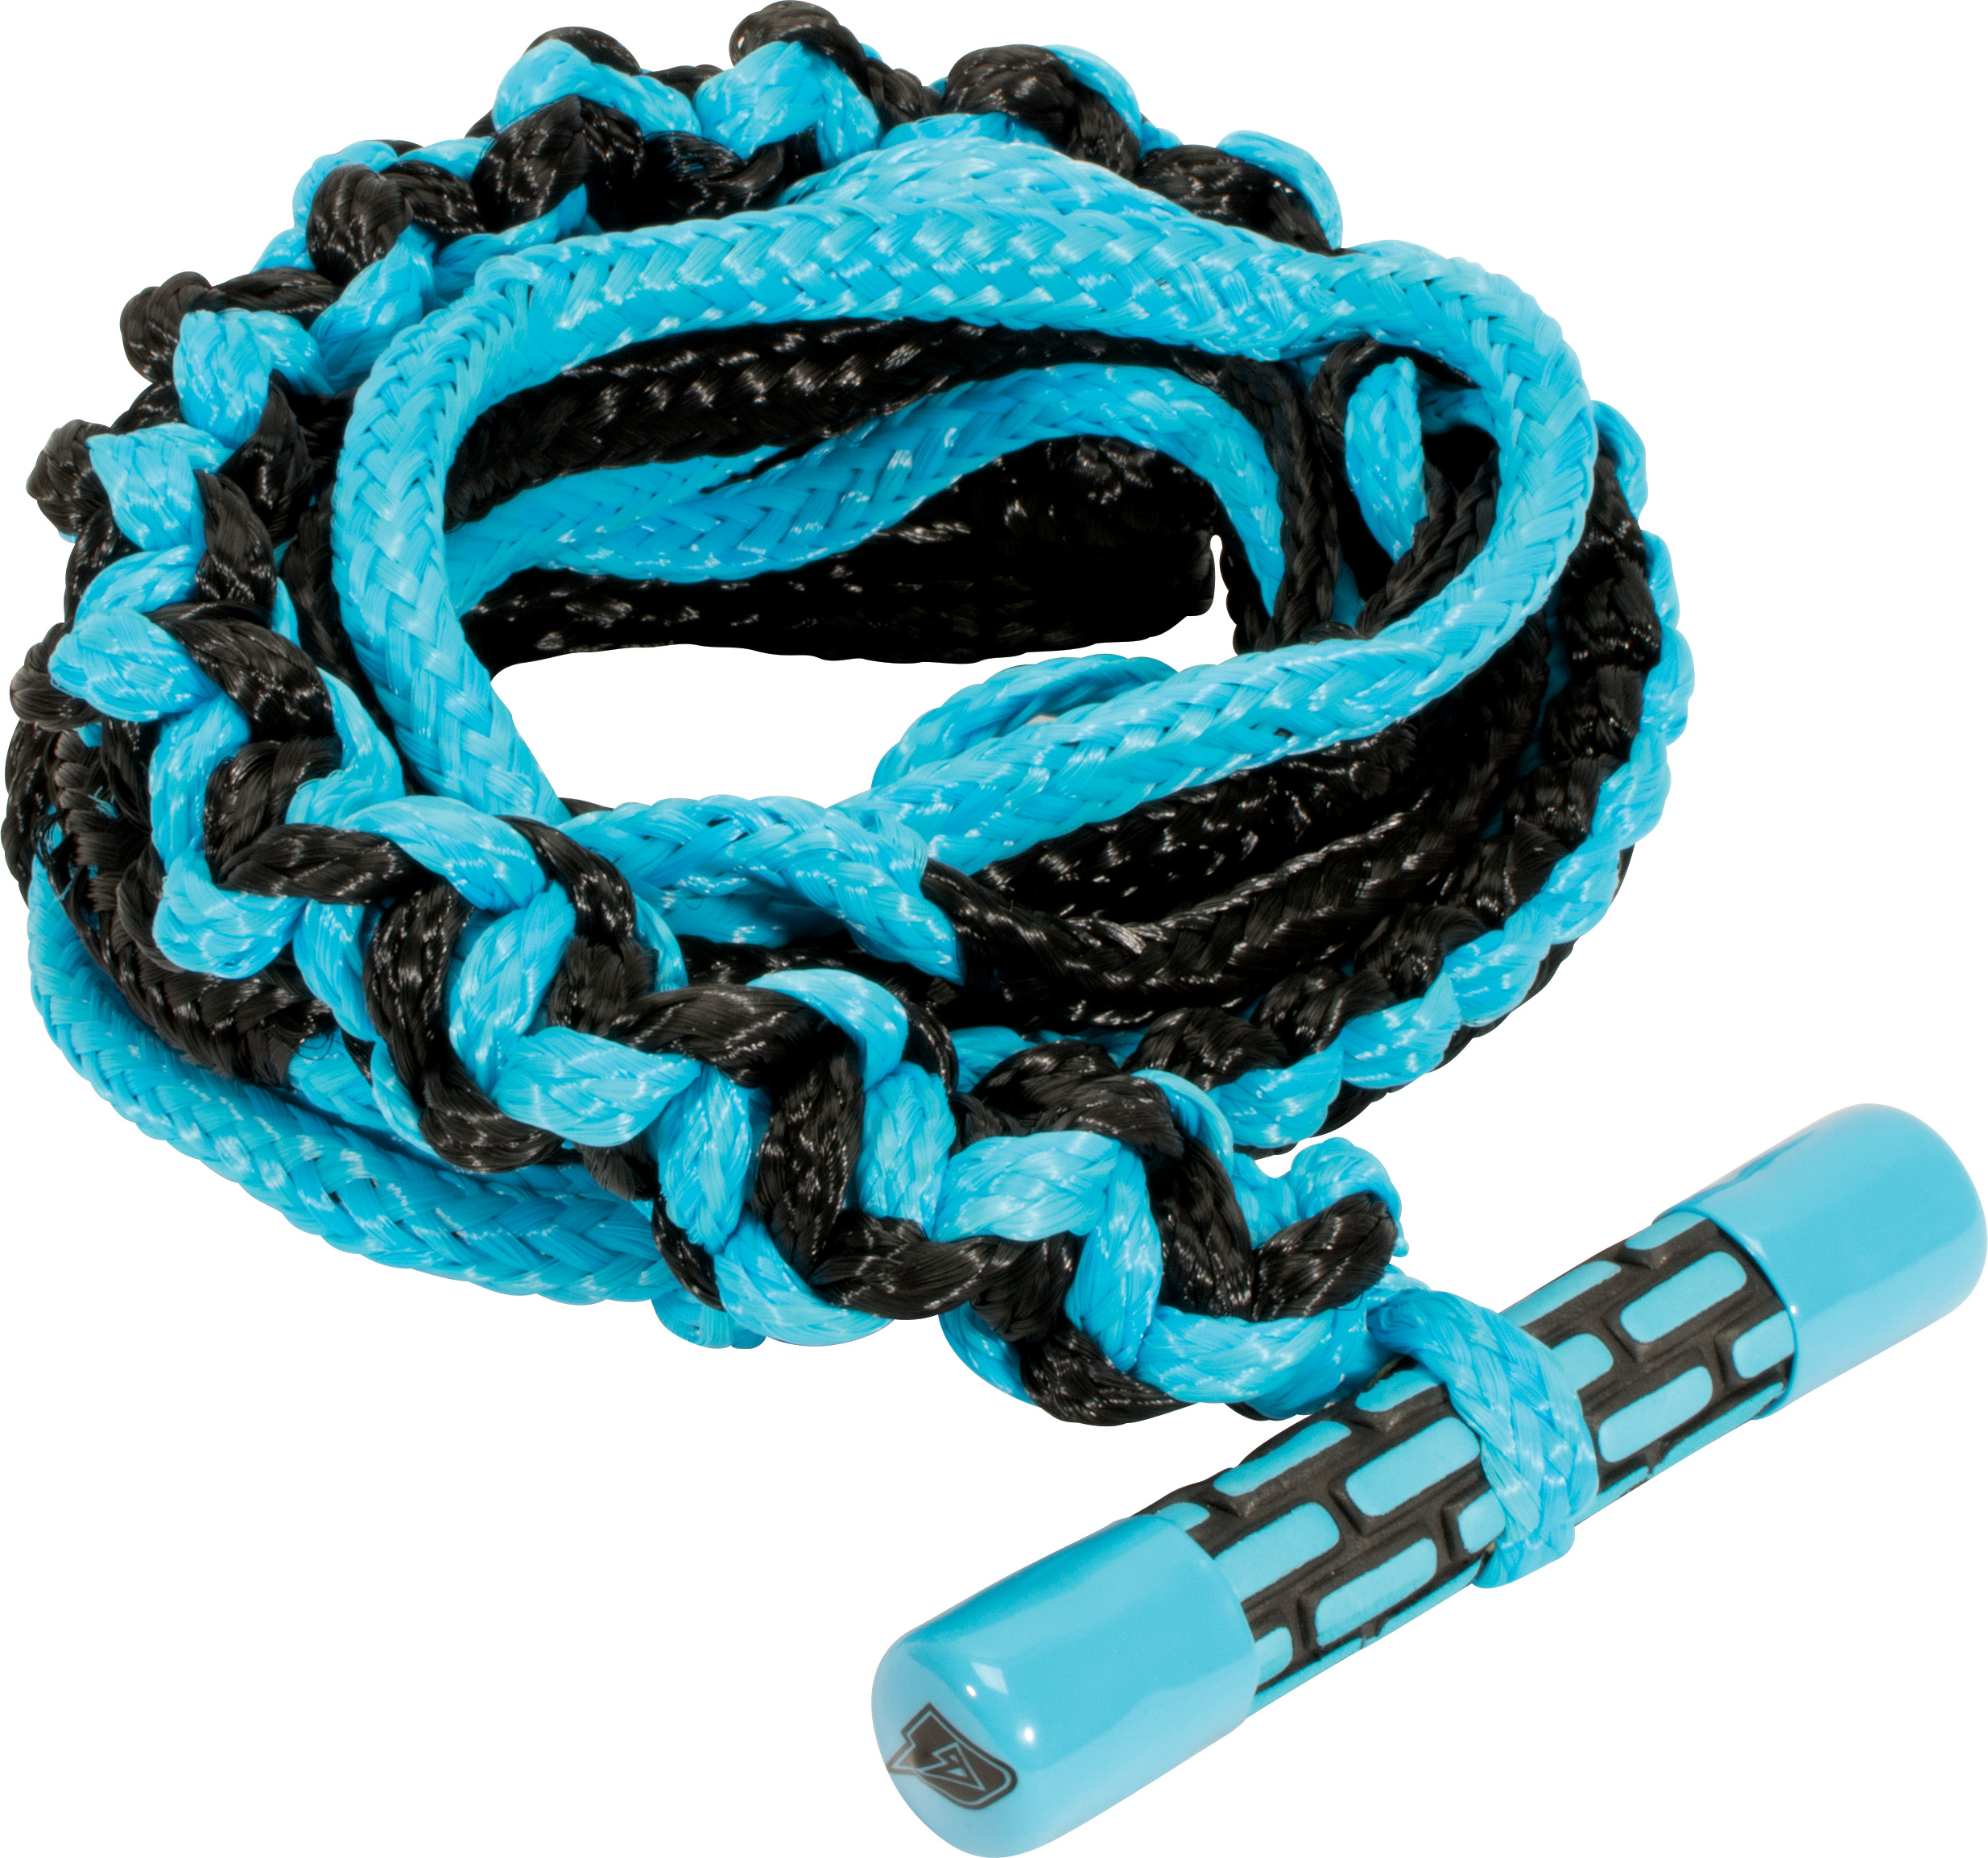 20' SURF ROPE W/T-BAR PACKAGE - BLUE CONNELLY 2018